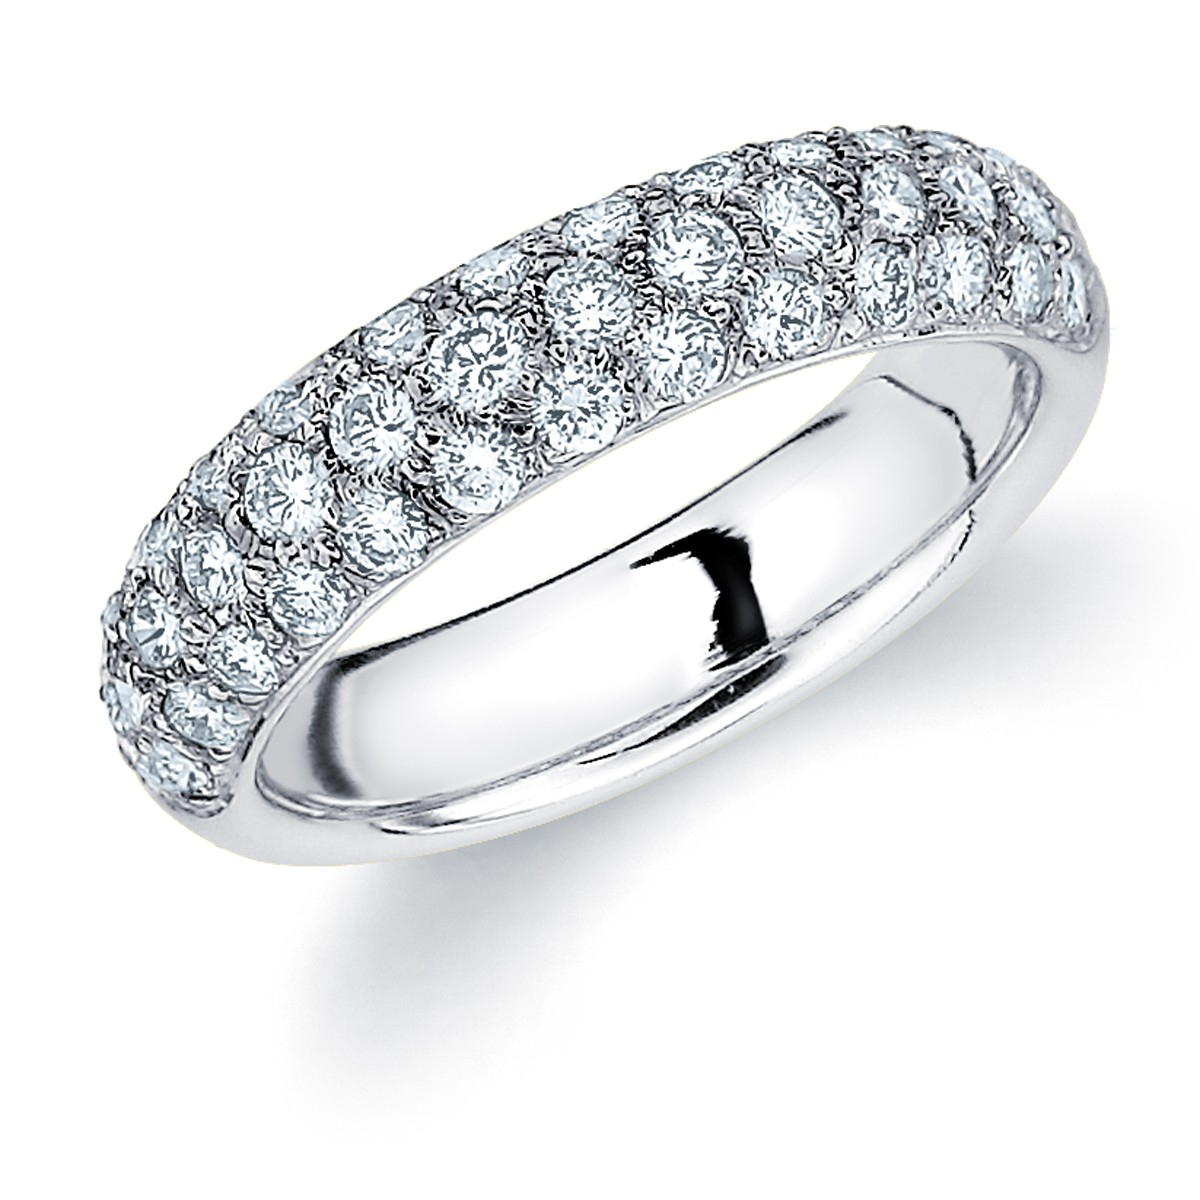 Pave Diamond Wedding Band | 3 Row Pave Ring Throughout Most Up To Date Triple Row Micropavé Diamond Wedding Bands (View 8 of 25)